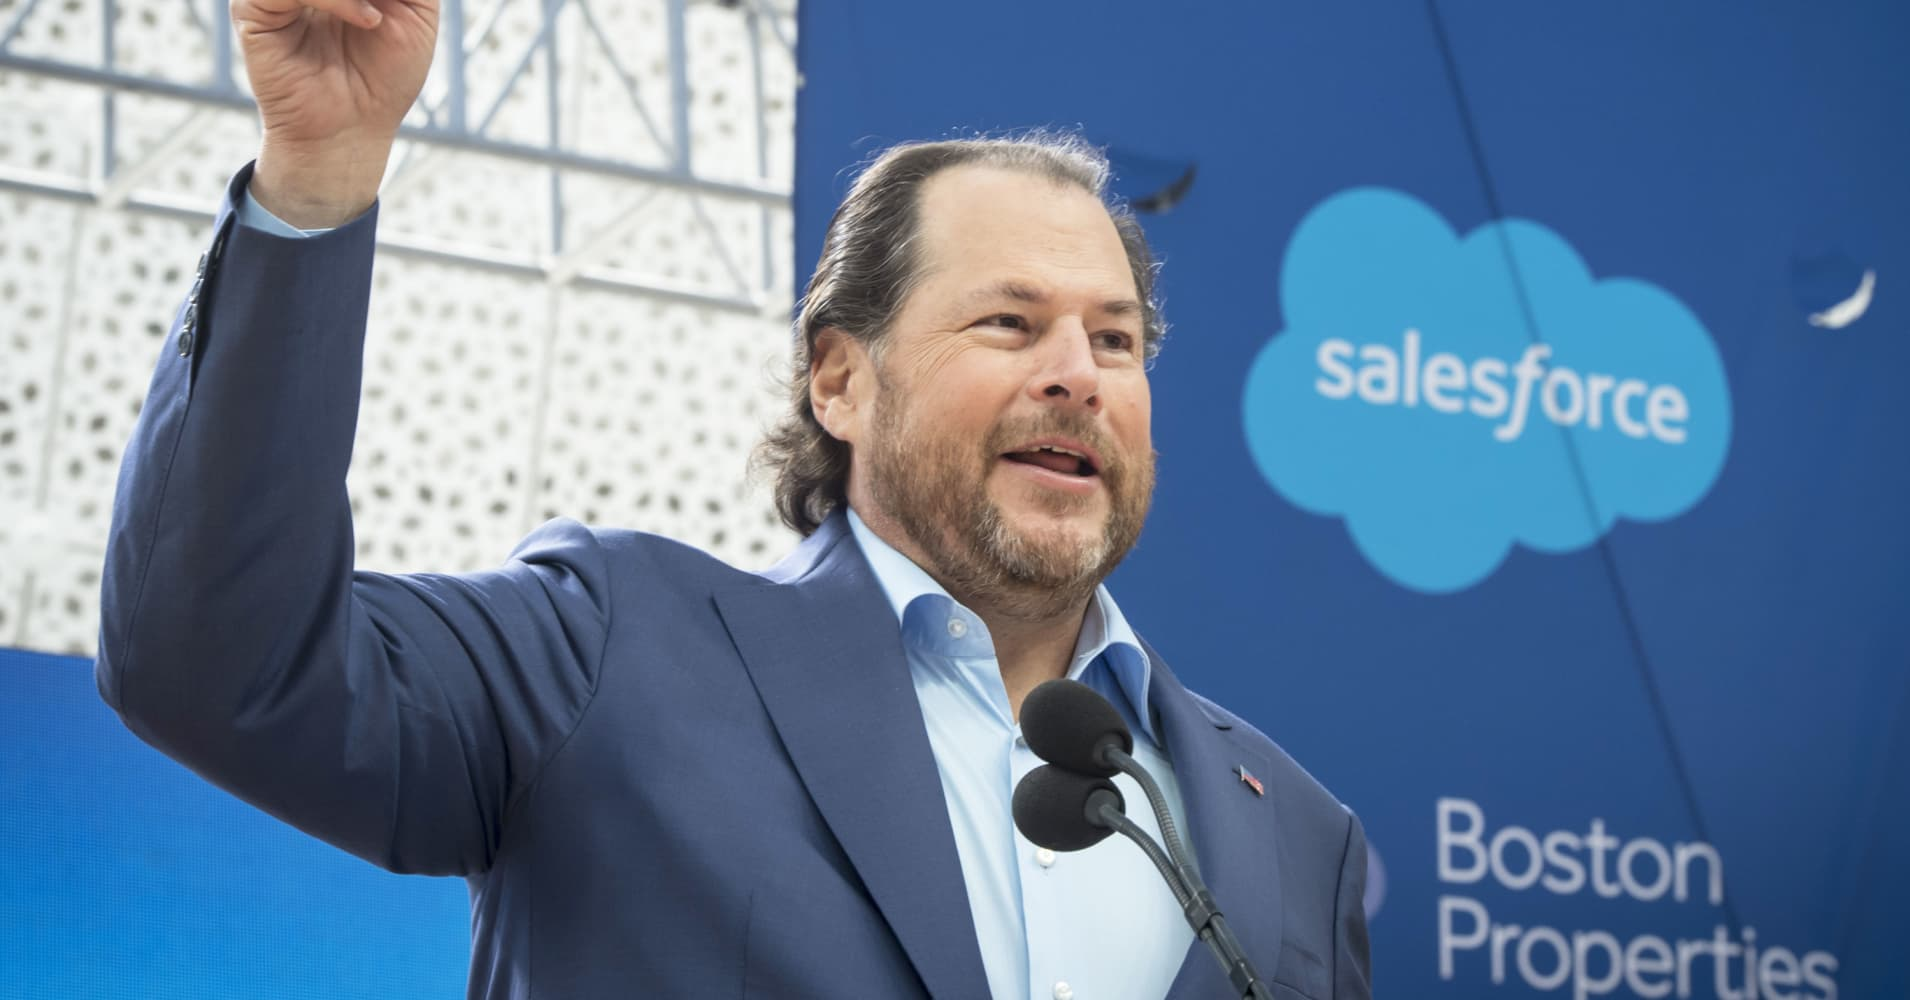 cnbc.com - Jordan Novet - Salesforce starts competing with Microsoft PowerPoint